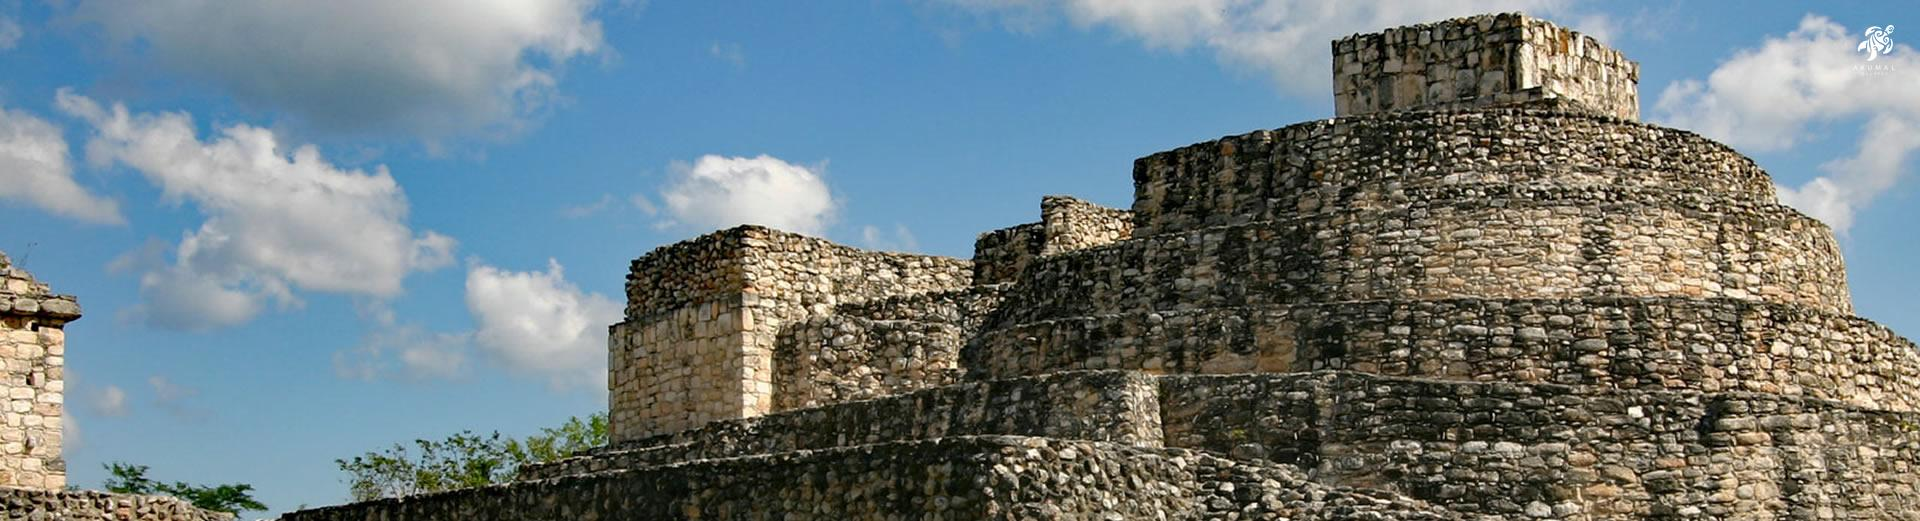 The Mayan had fantastic buildings all built with local stones